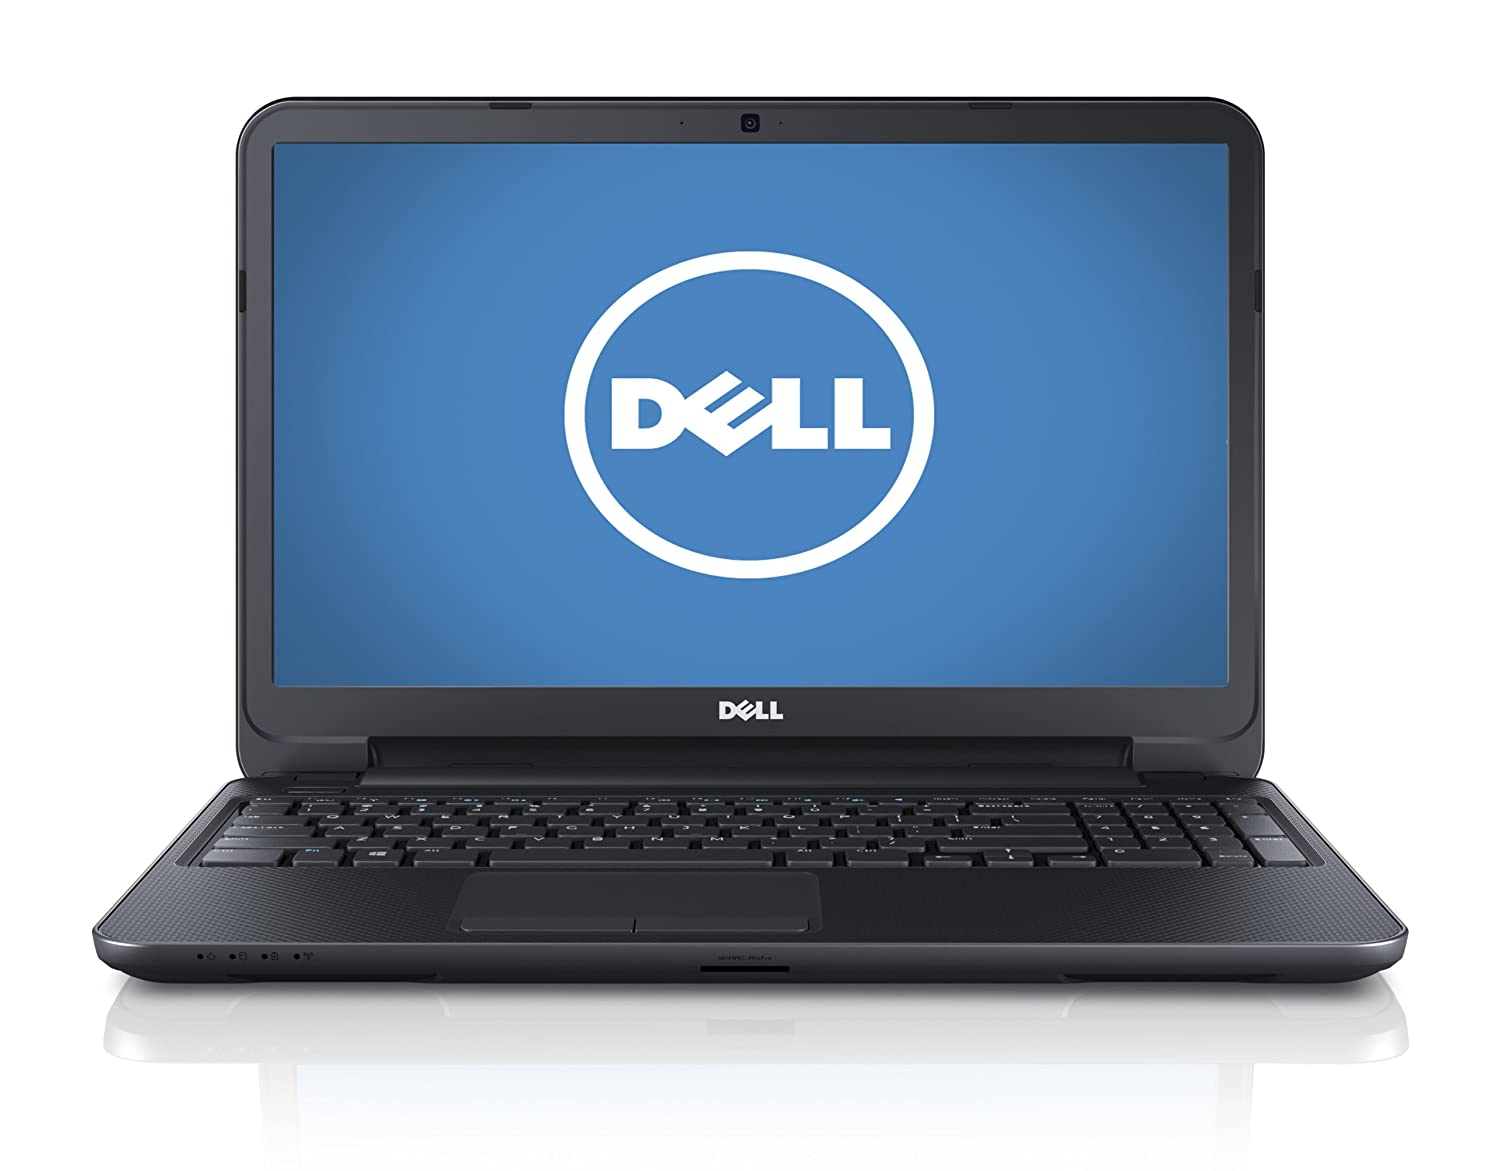 Dell Inspiron 15 i15RV-6190BLK 15 6-Inch Laptop (Black Matte with Textured  Finish) [Discontinued By Manufacturer]